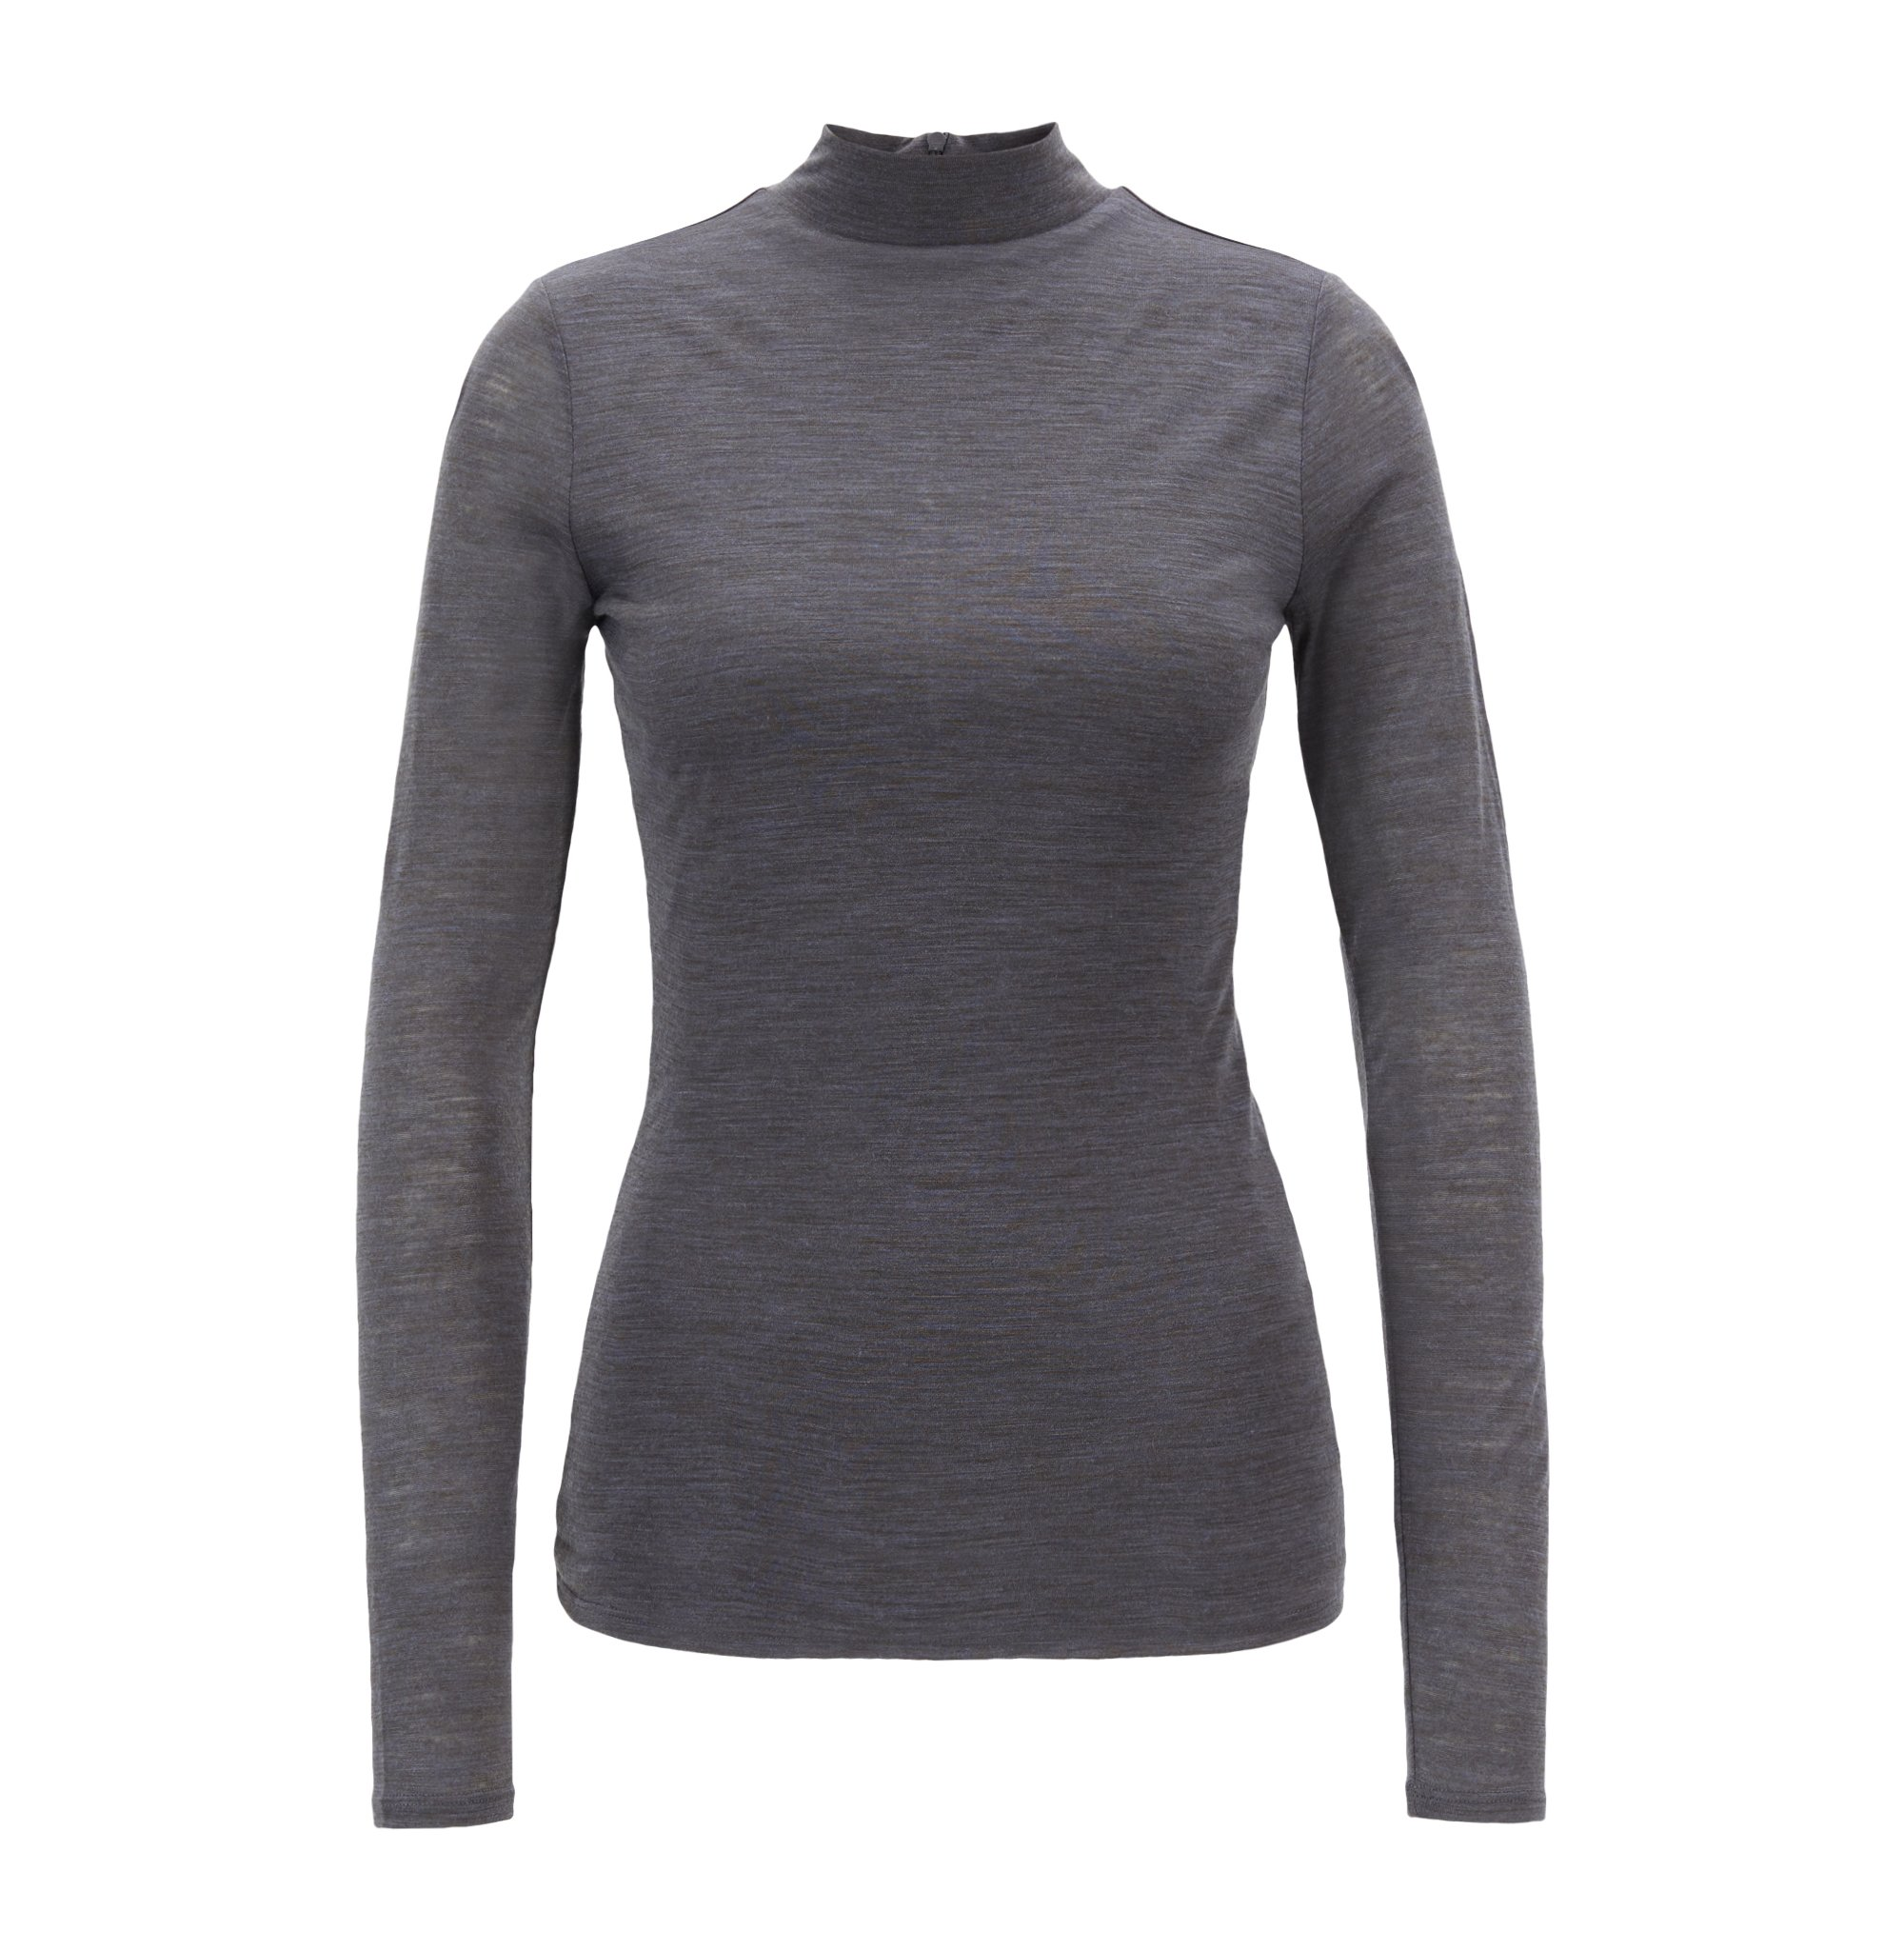 Turtleneck top in lightweight fabric with lined body, Charcoal